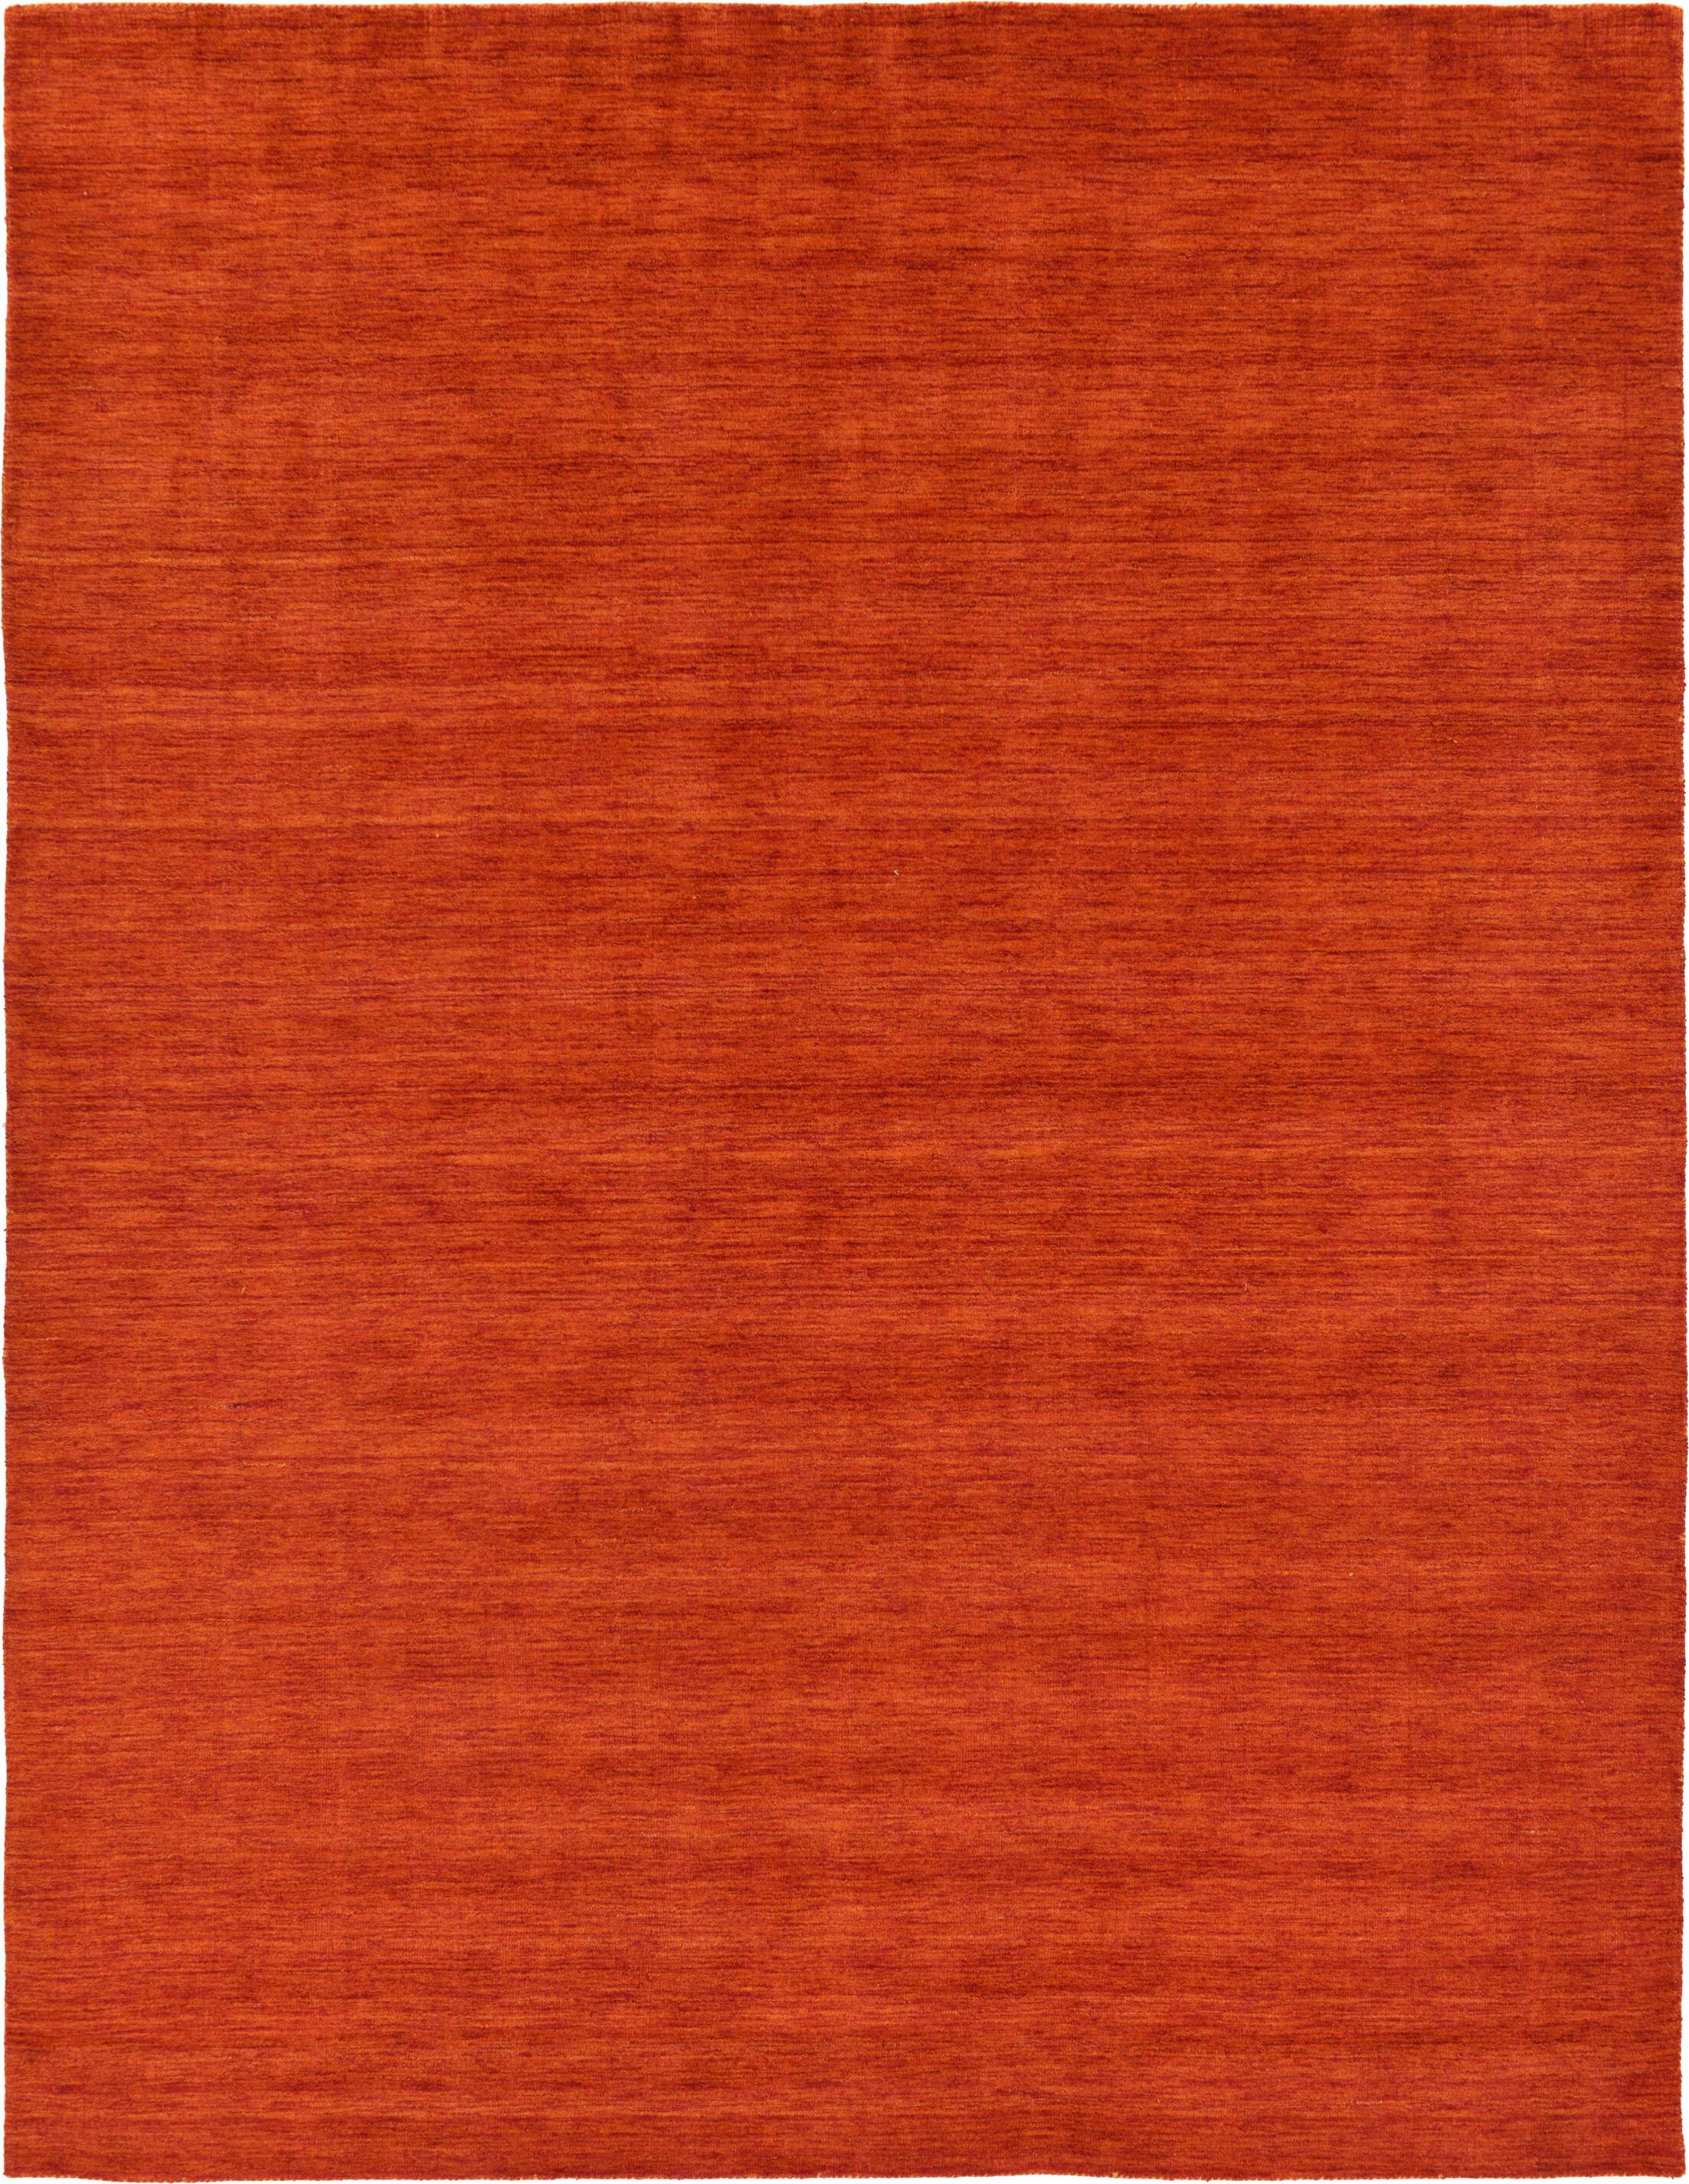 Taul Hand-Knotted Wool Red Area Rug Rug Size: 9' 10 x 13'